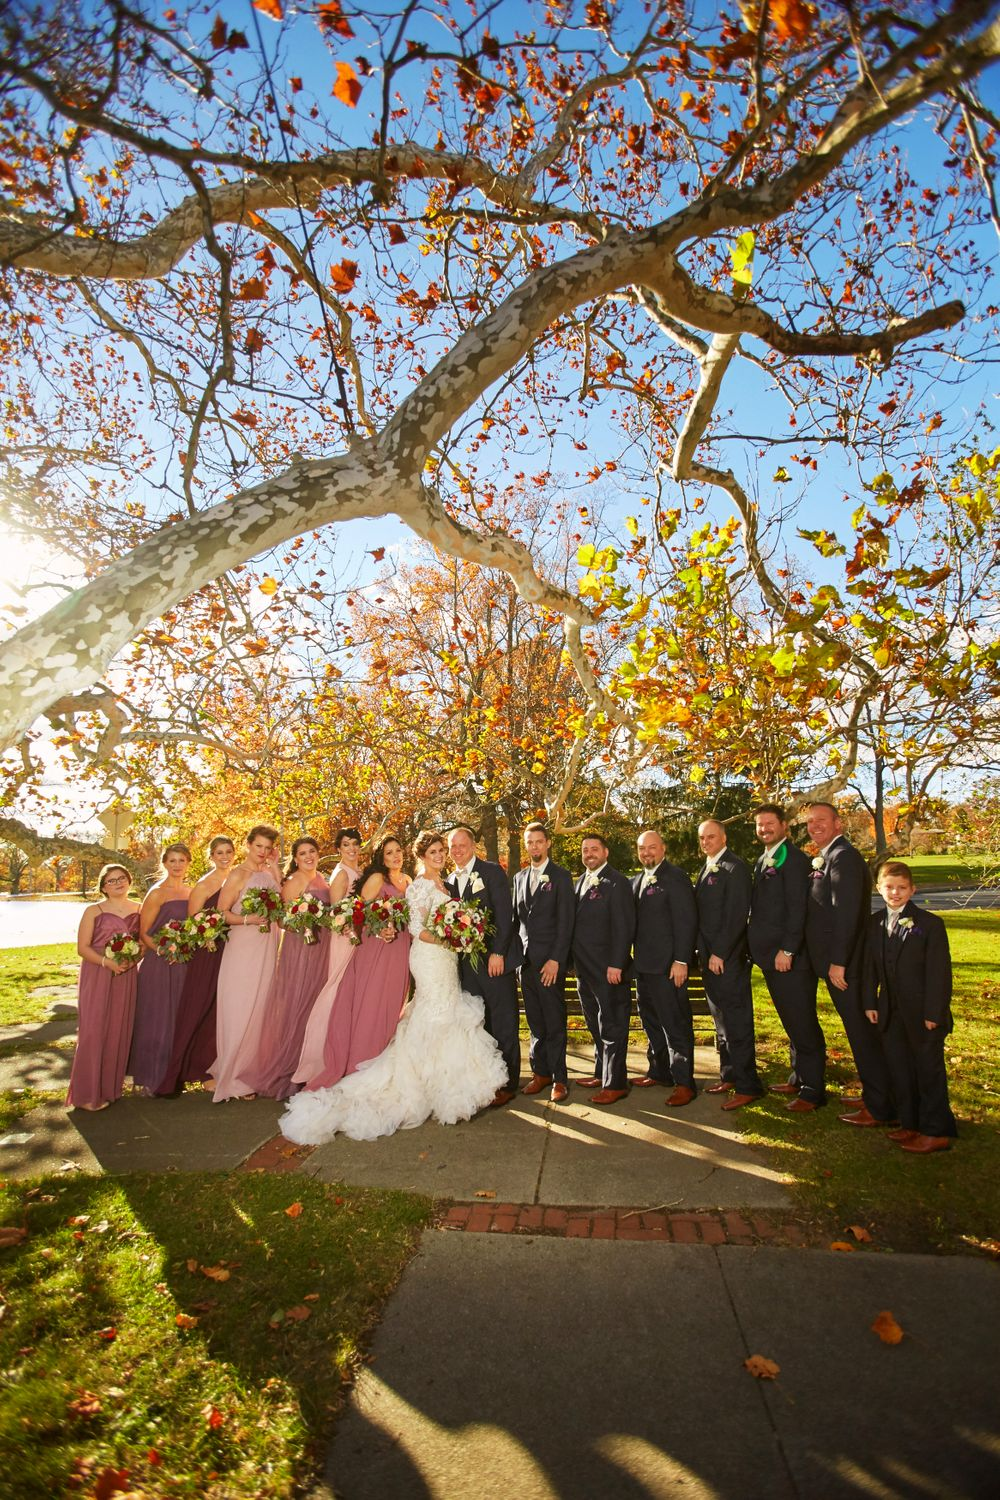 gorgeous fall color in this wedding party formal at roger williams park in providence rhode island